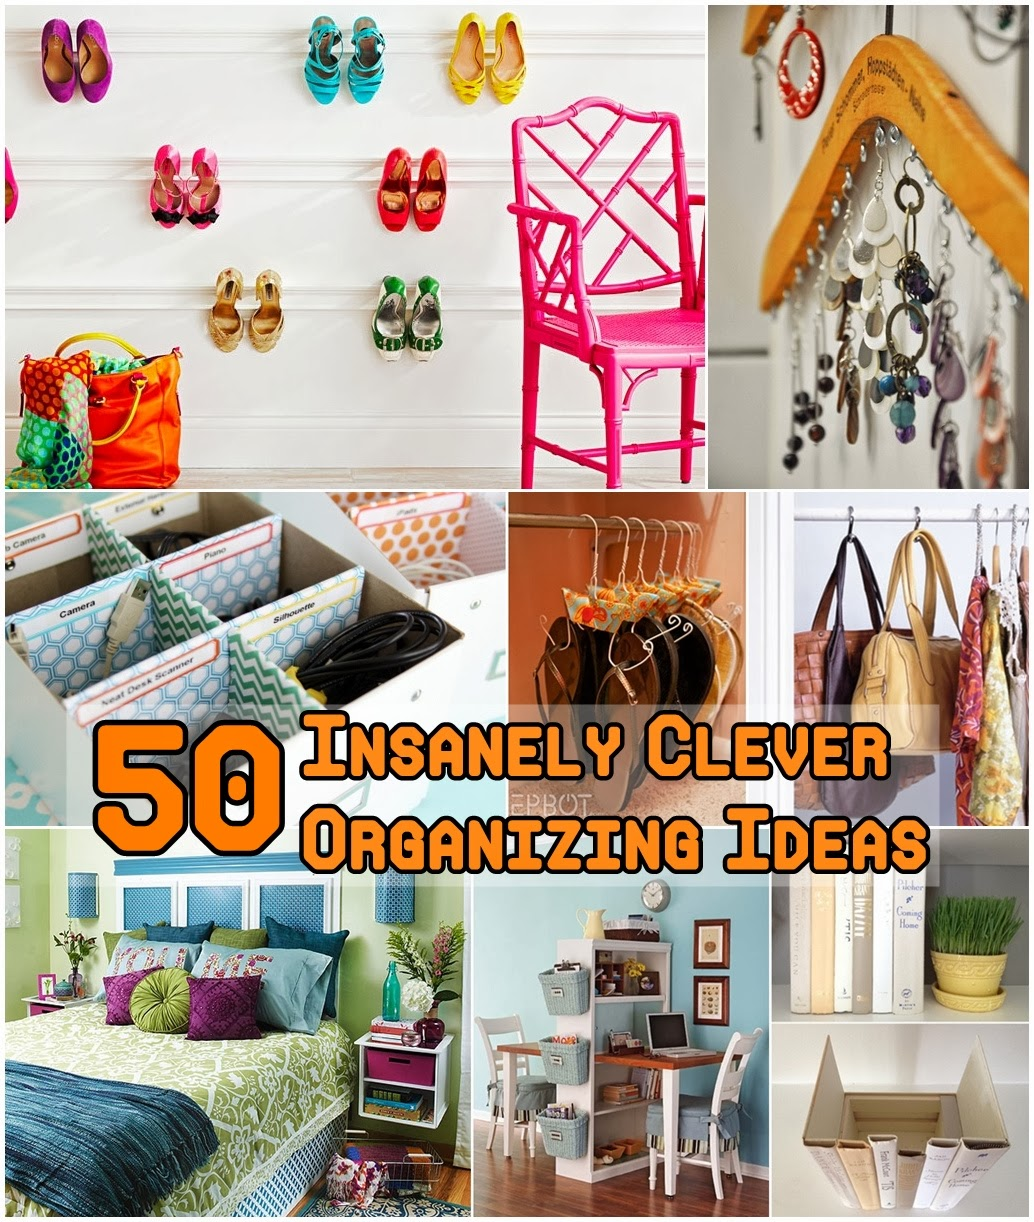 50 Insanely Clever Organizing Ideas - DIY Craft Projects